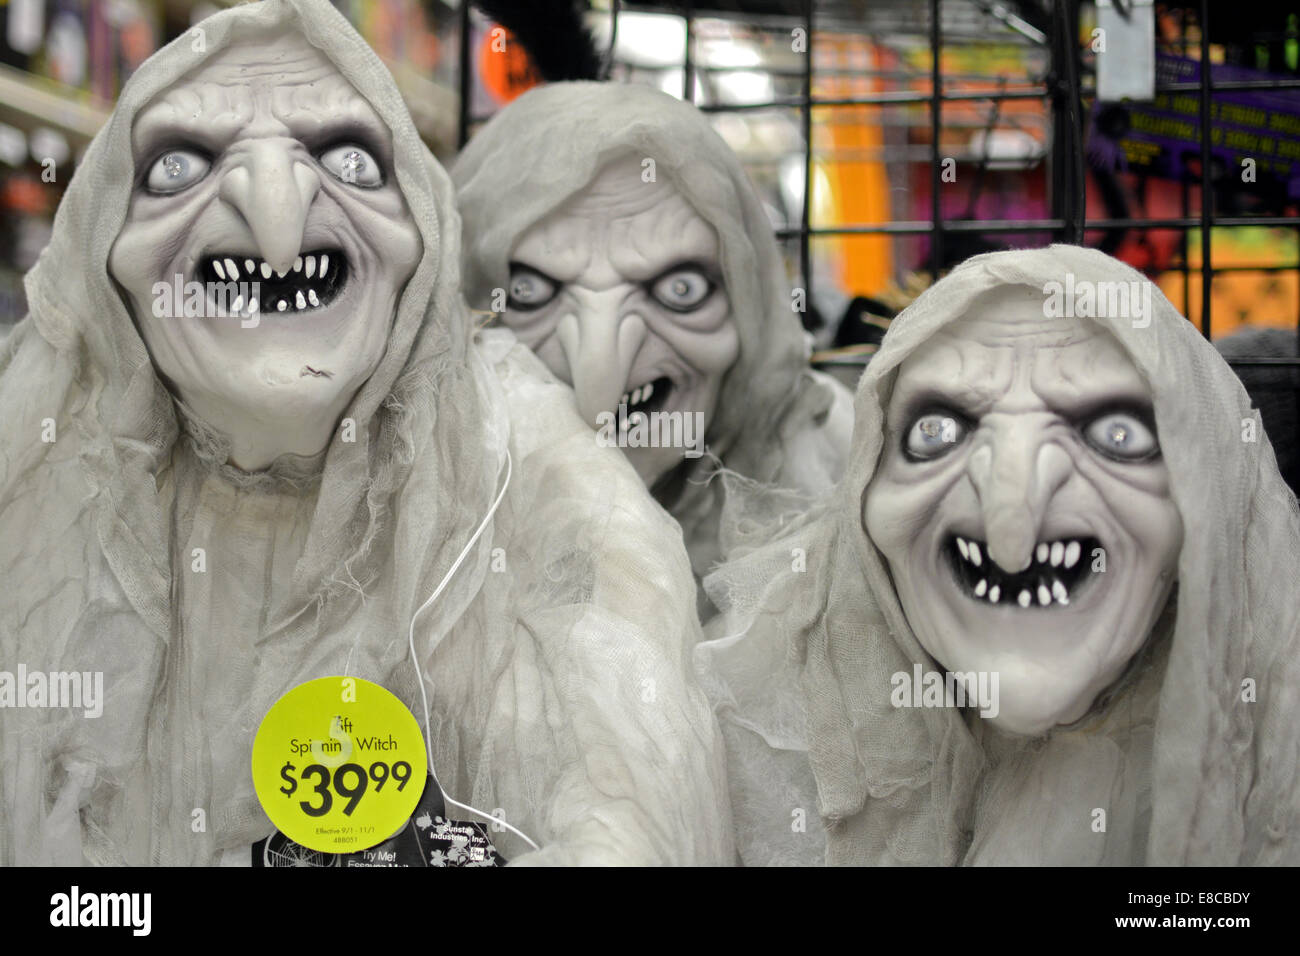 party city halloween store display stock photos & party city